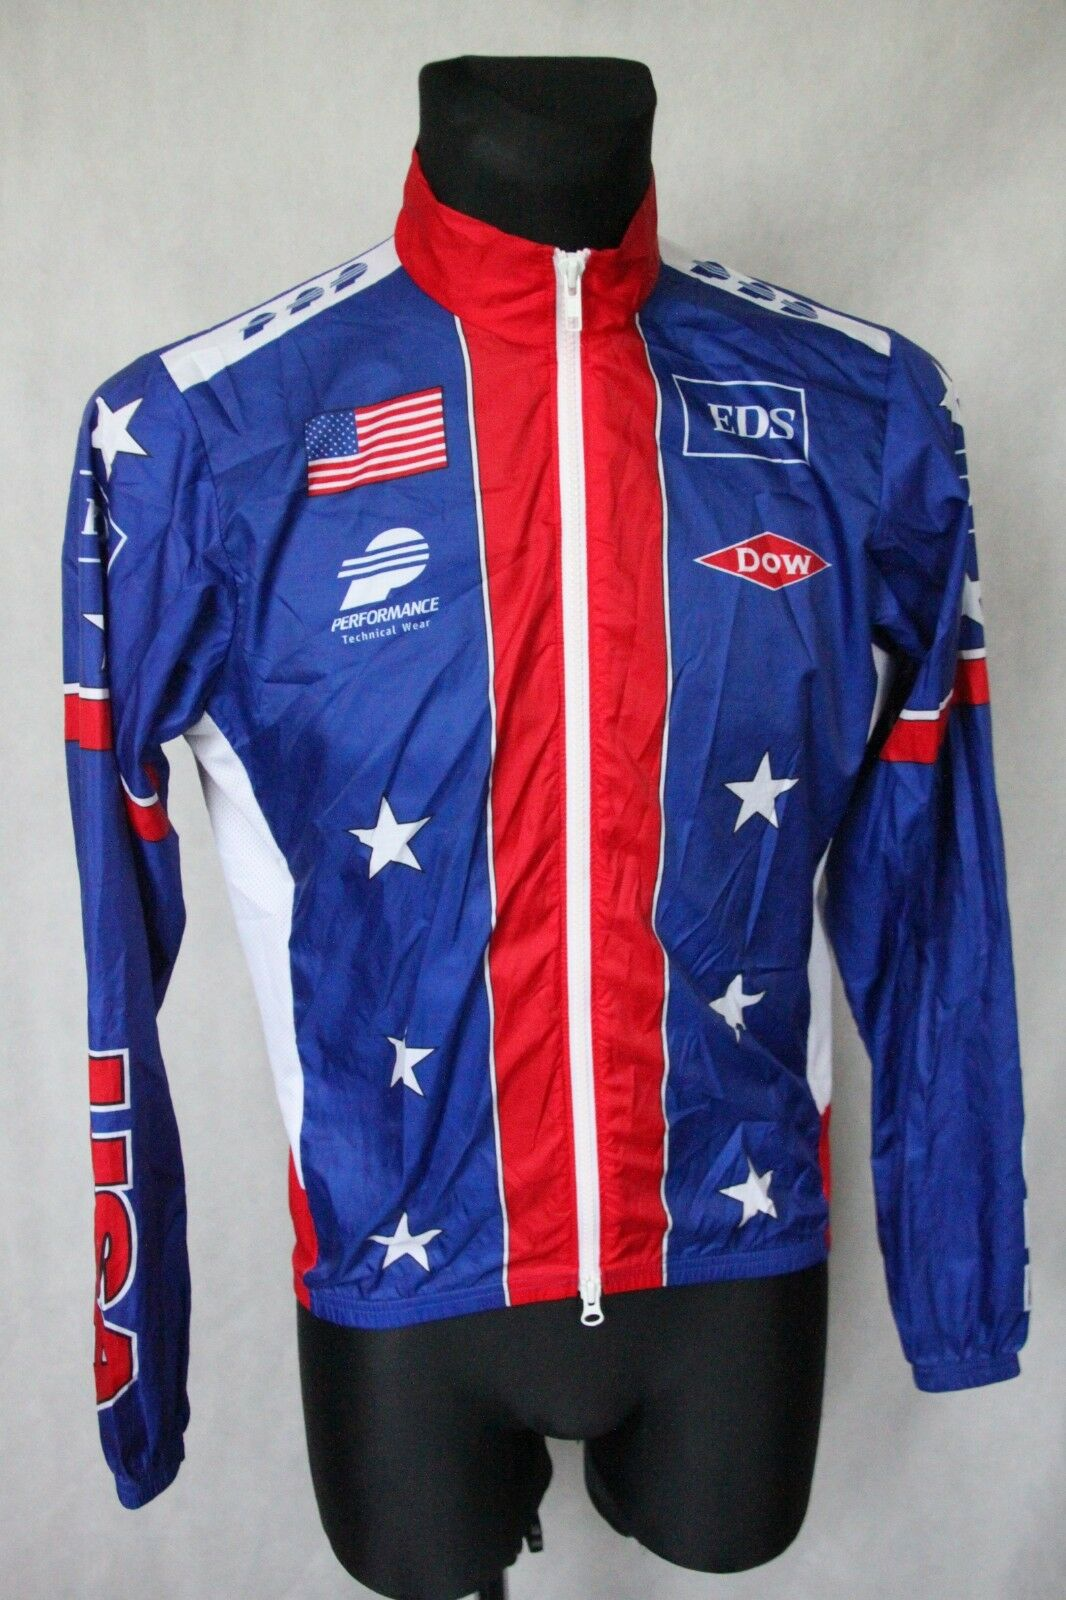 USA PERFORMANCE TECHNICAL  WEAR Cycling Jersey Long Sleeve Top Full Zip sz Small  first-class quality